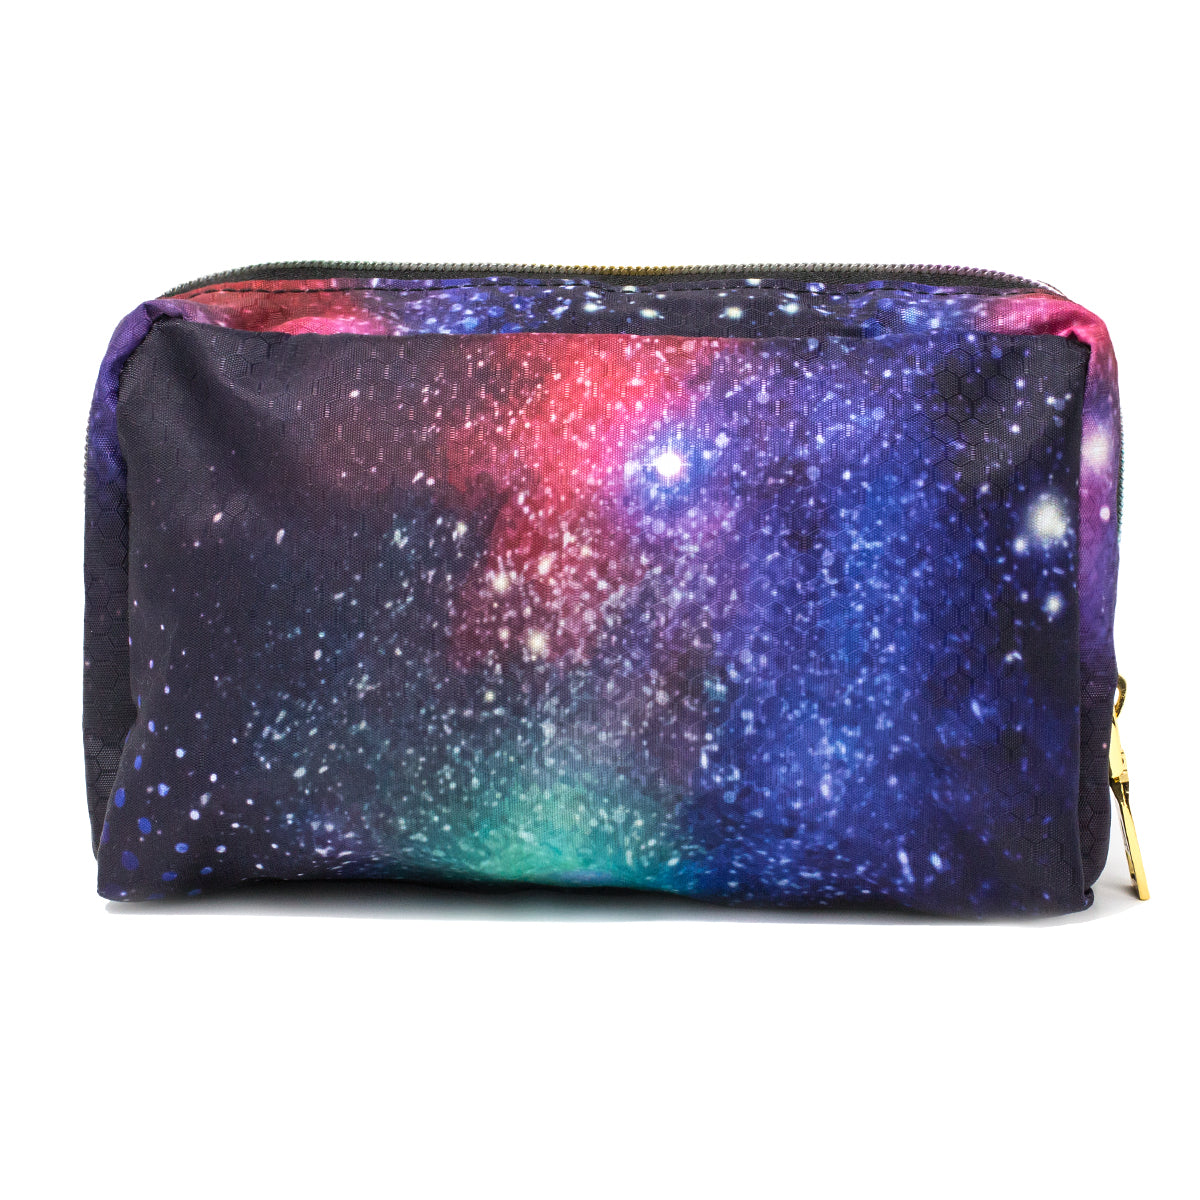 Blue, Purple & Red Galaxy printed Makeup Bag